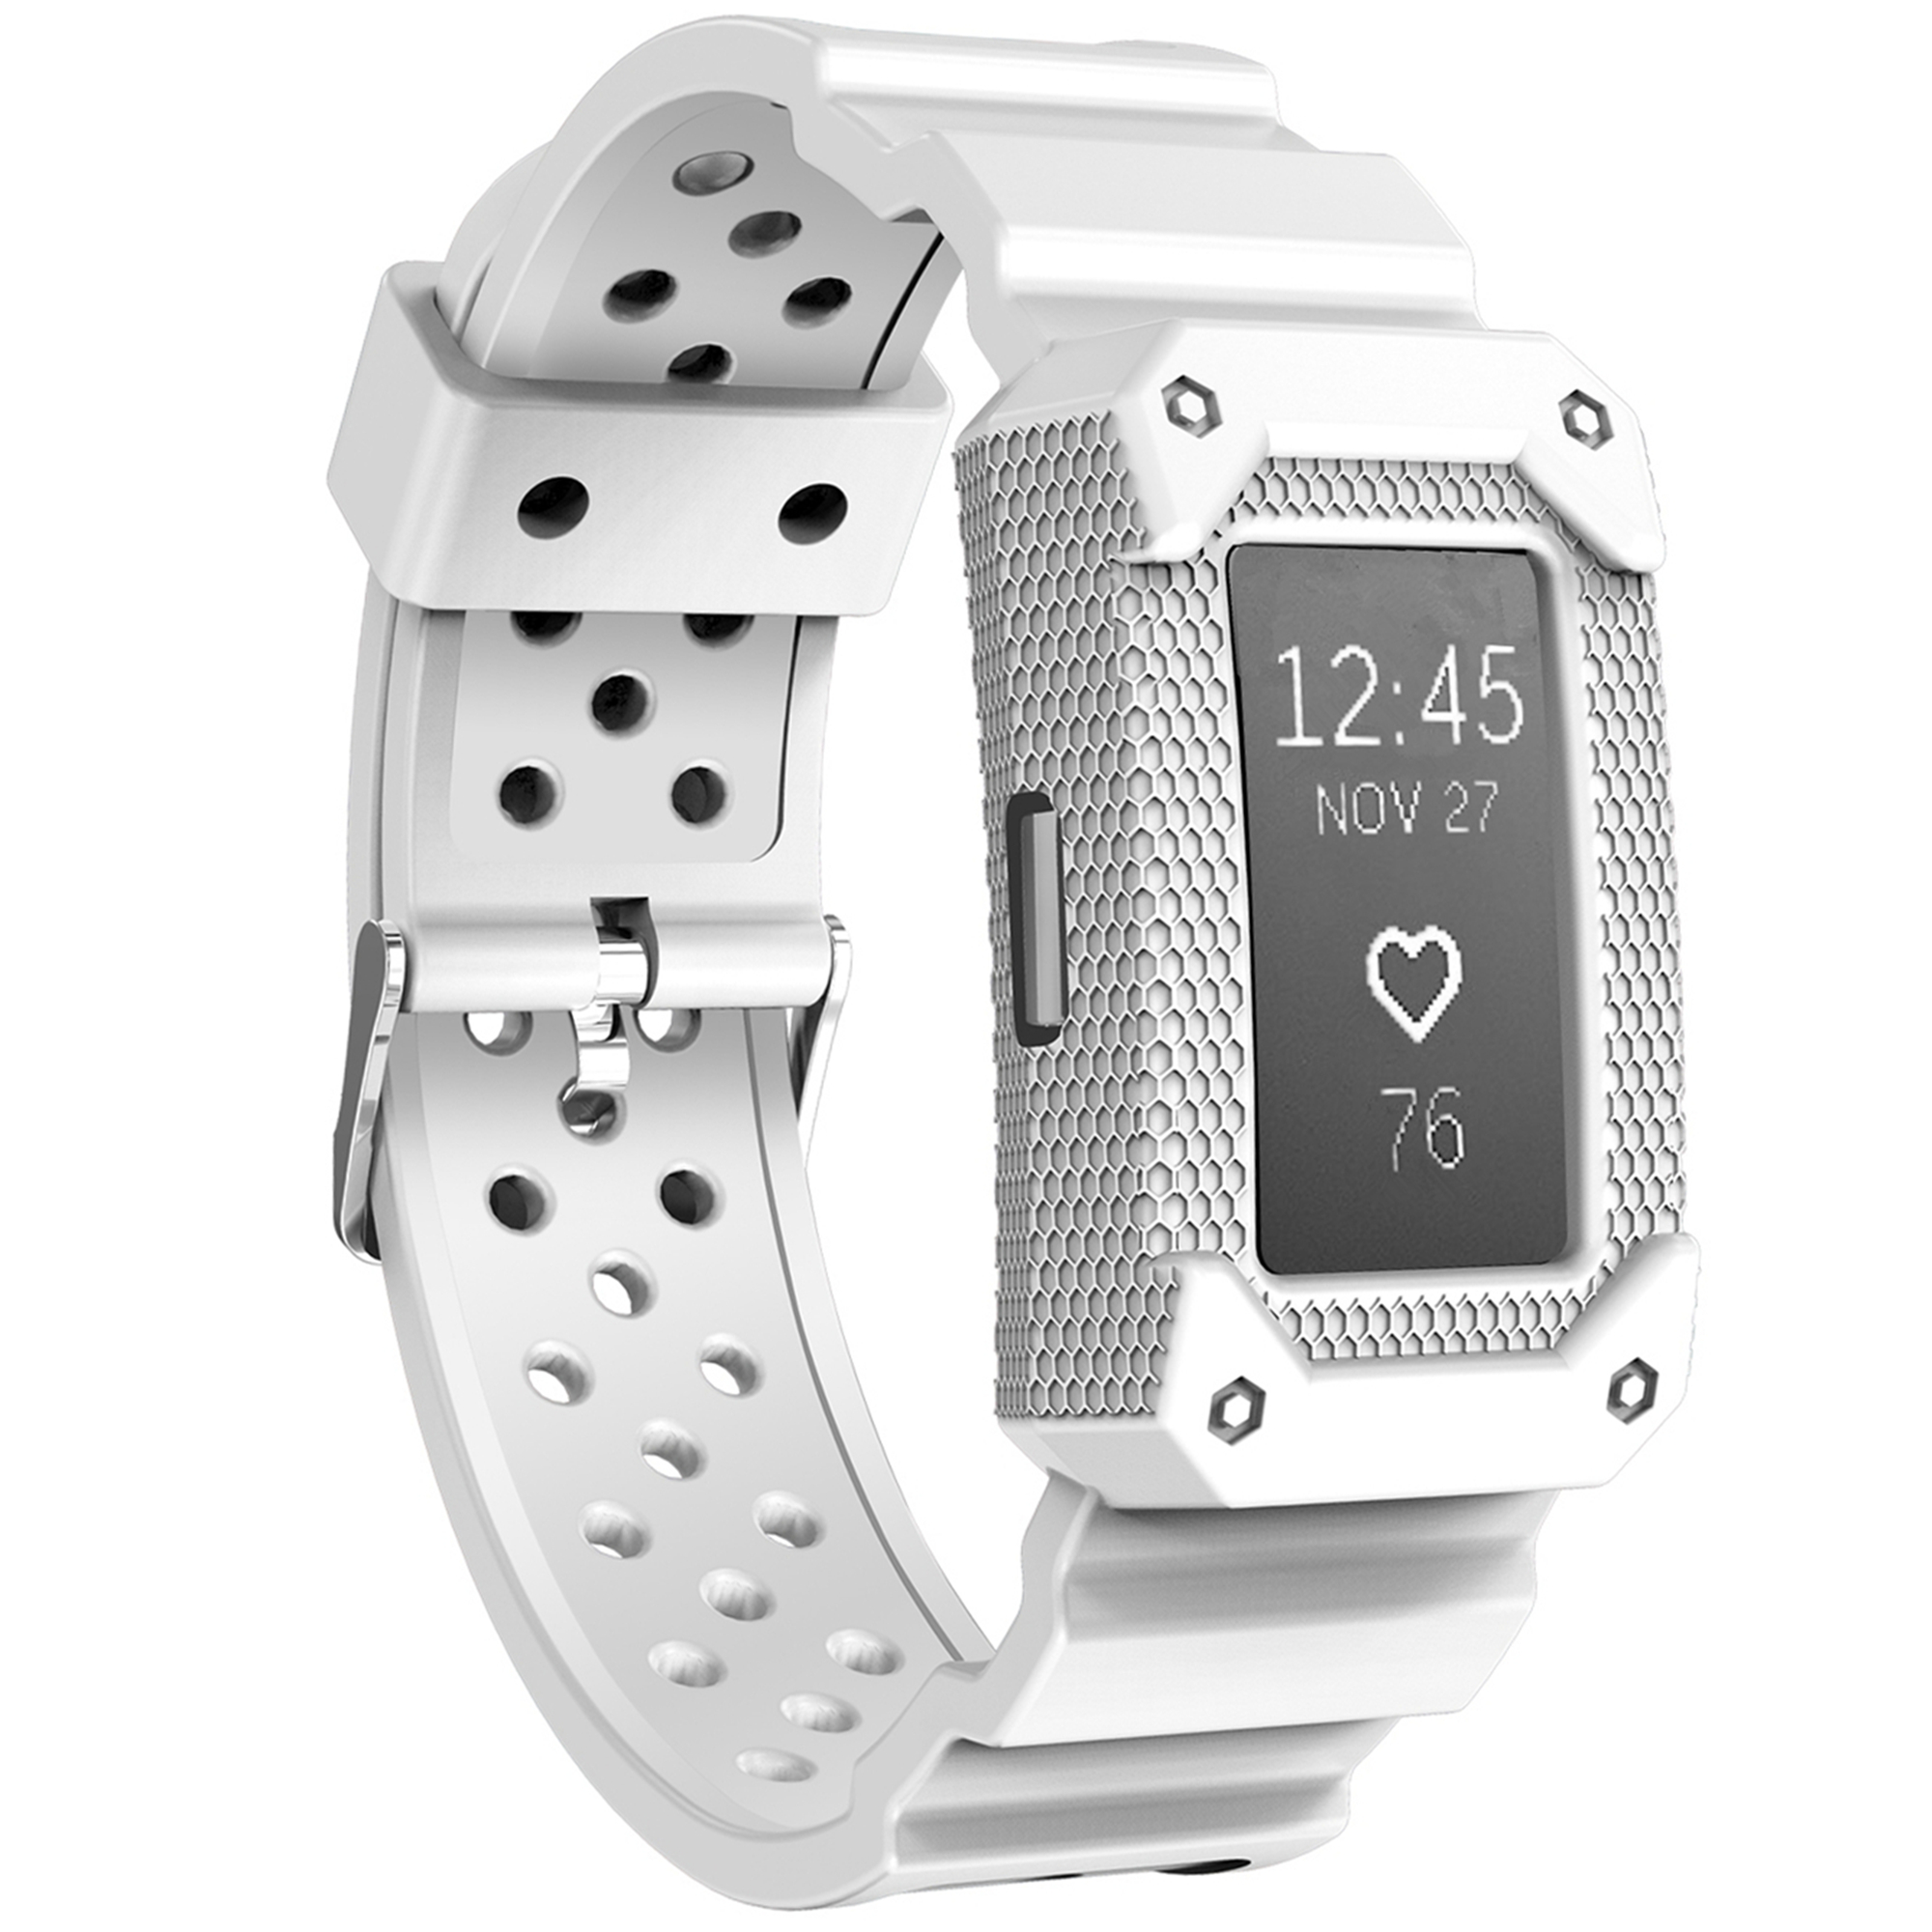 Moretek For Charge 2 Band, Silicone Replacement Sport Strap Wristband for Fitbit Charge 2 (White)